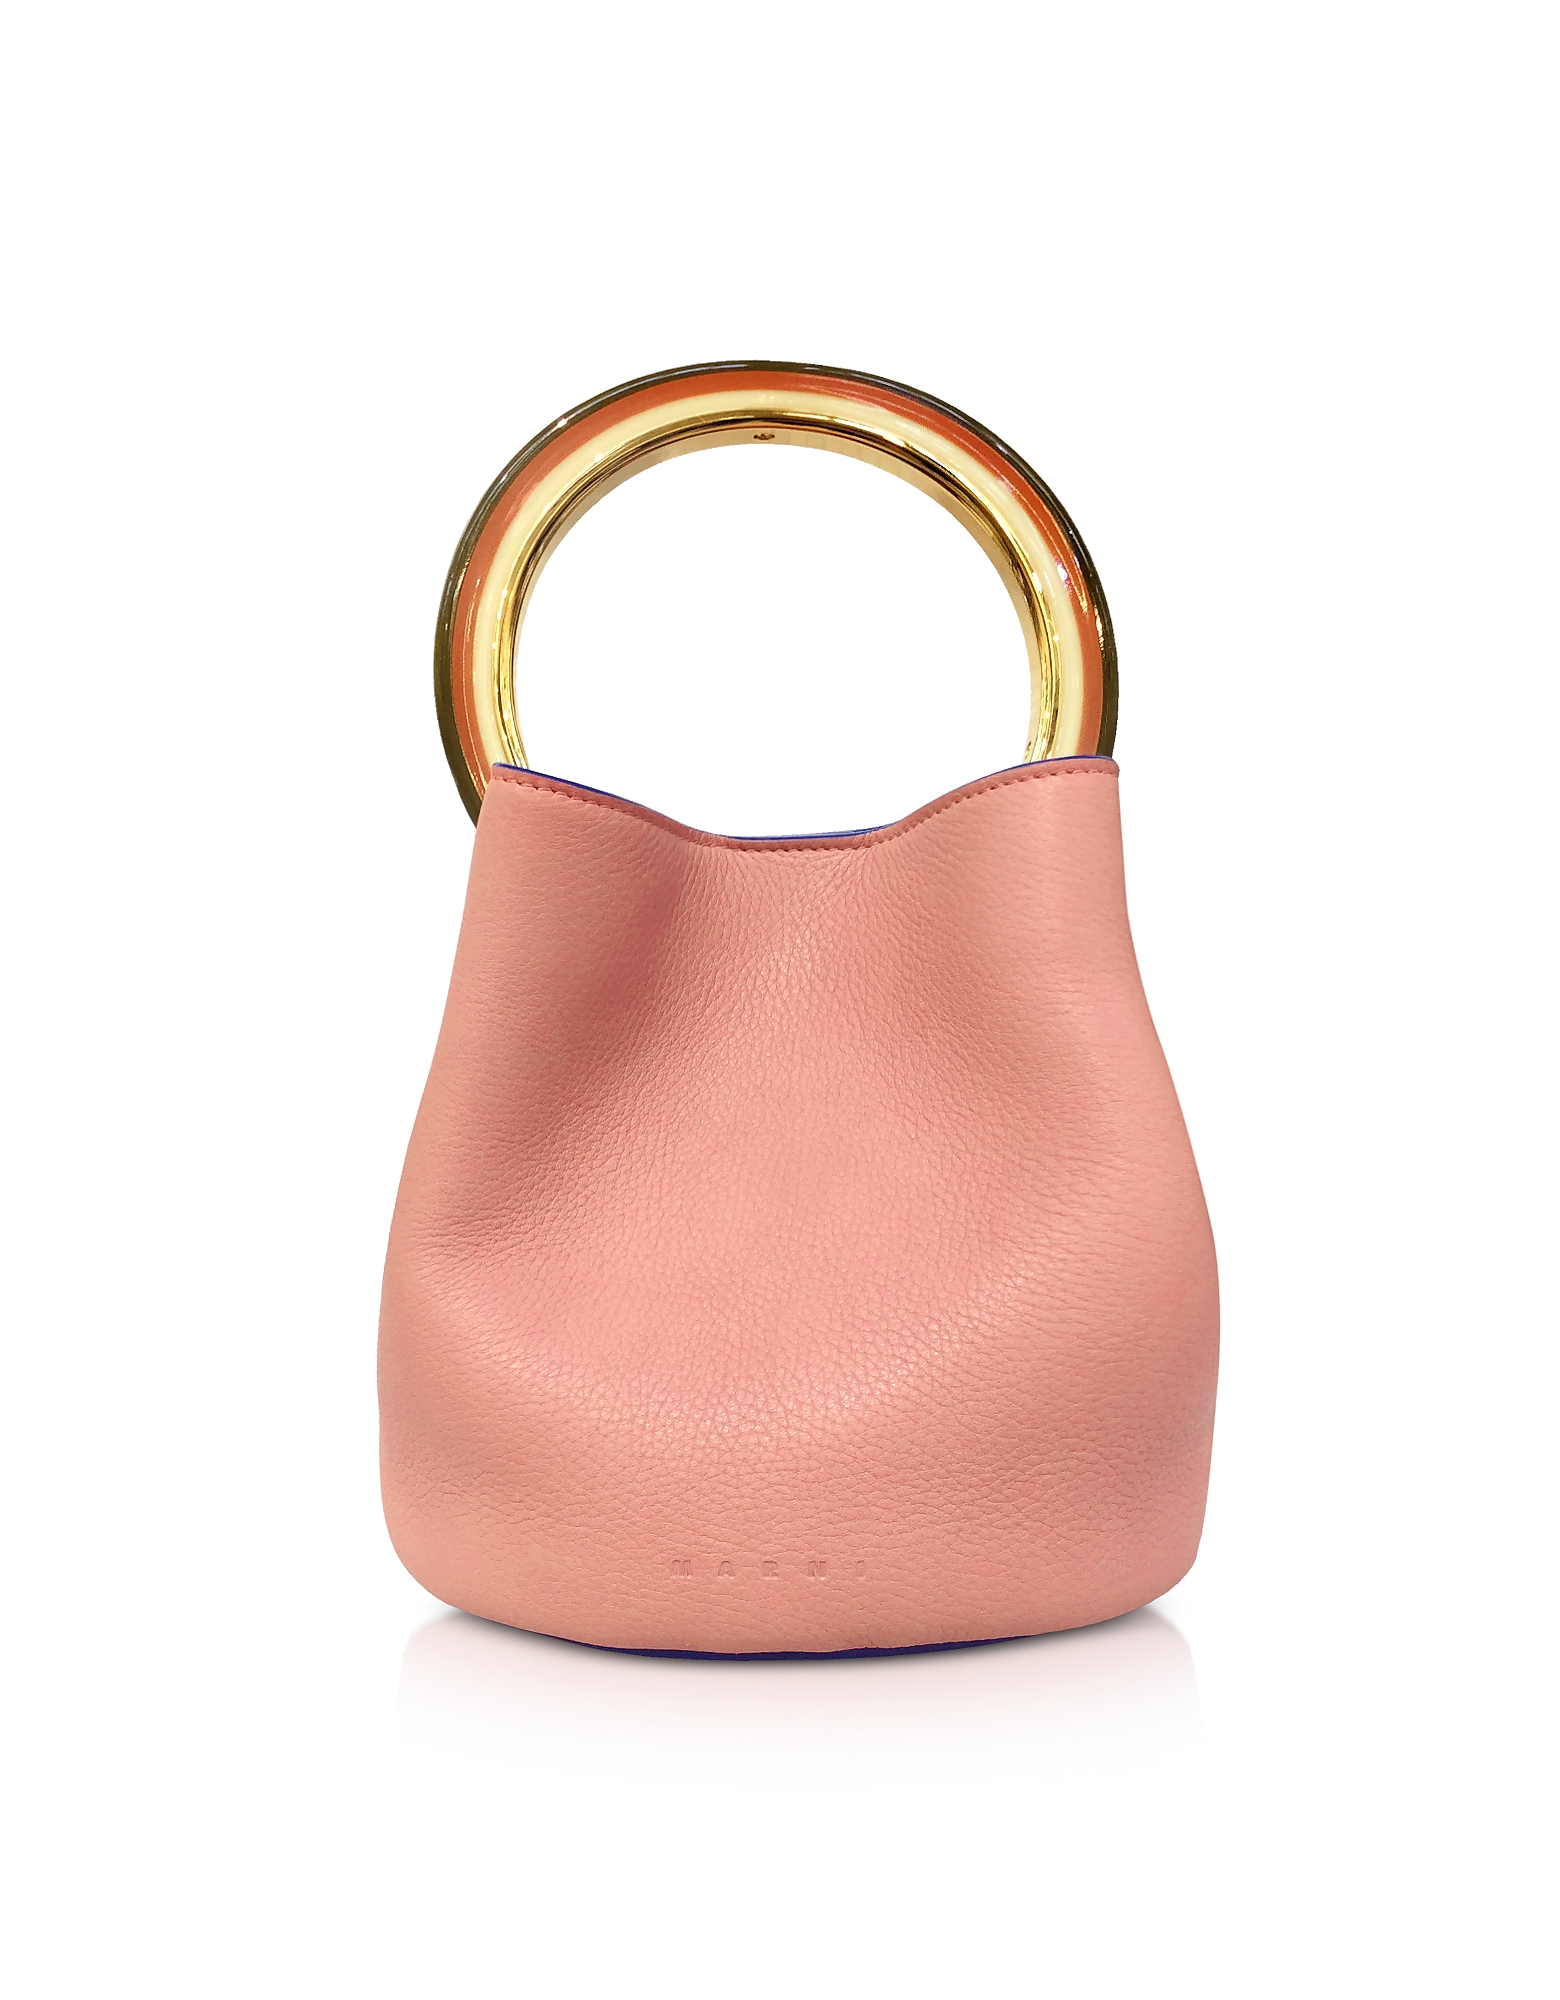 Image of Marni Designer Handbags, Apricot Leather Pannier Bag